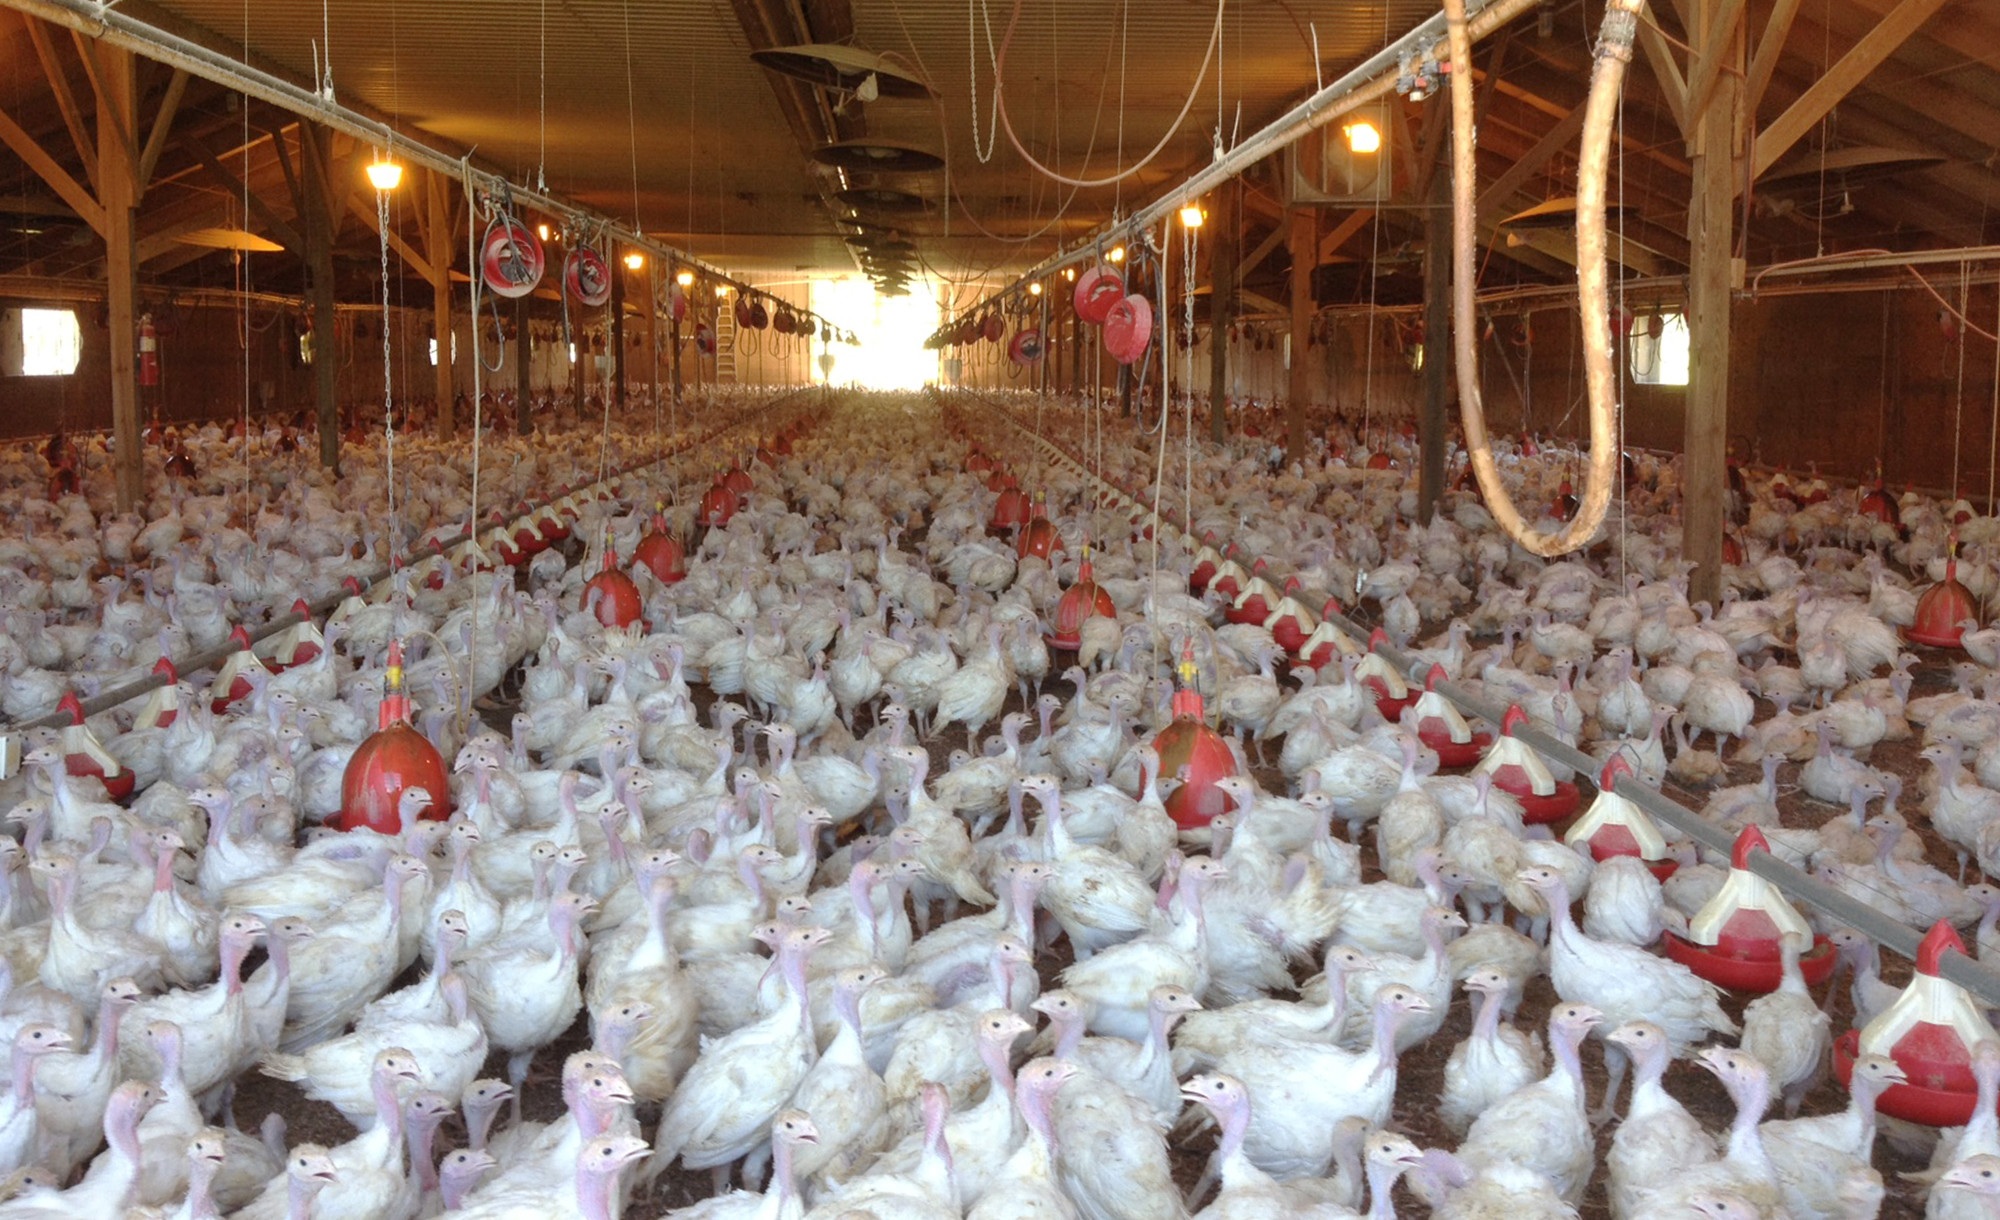 AP FILE PHOTOIn this photo provided by Bethany Hahn is a flock of turkeys at a Minnesota poultry farm.